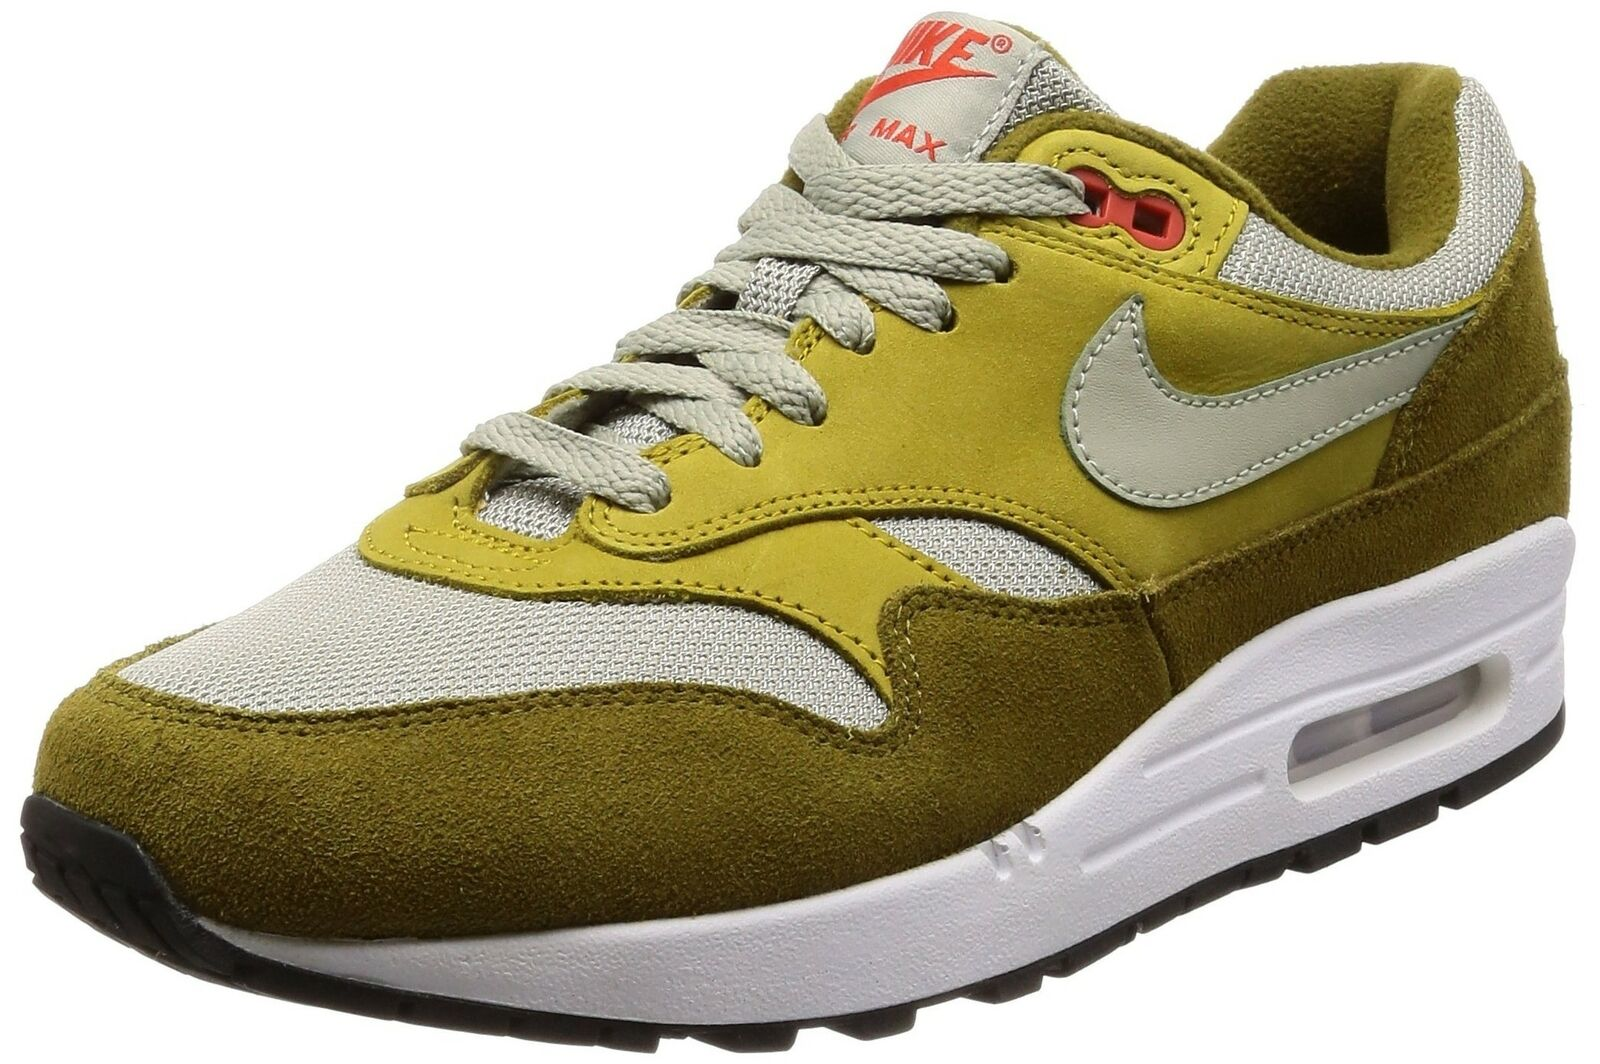 Nike Men's Air Max 1 Premium Running shoes